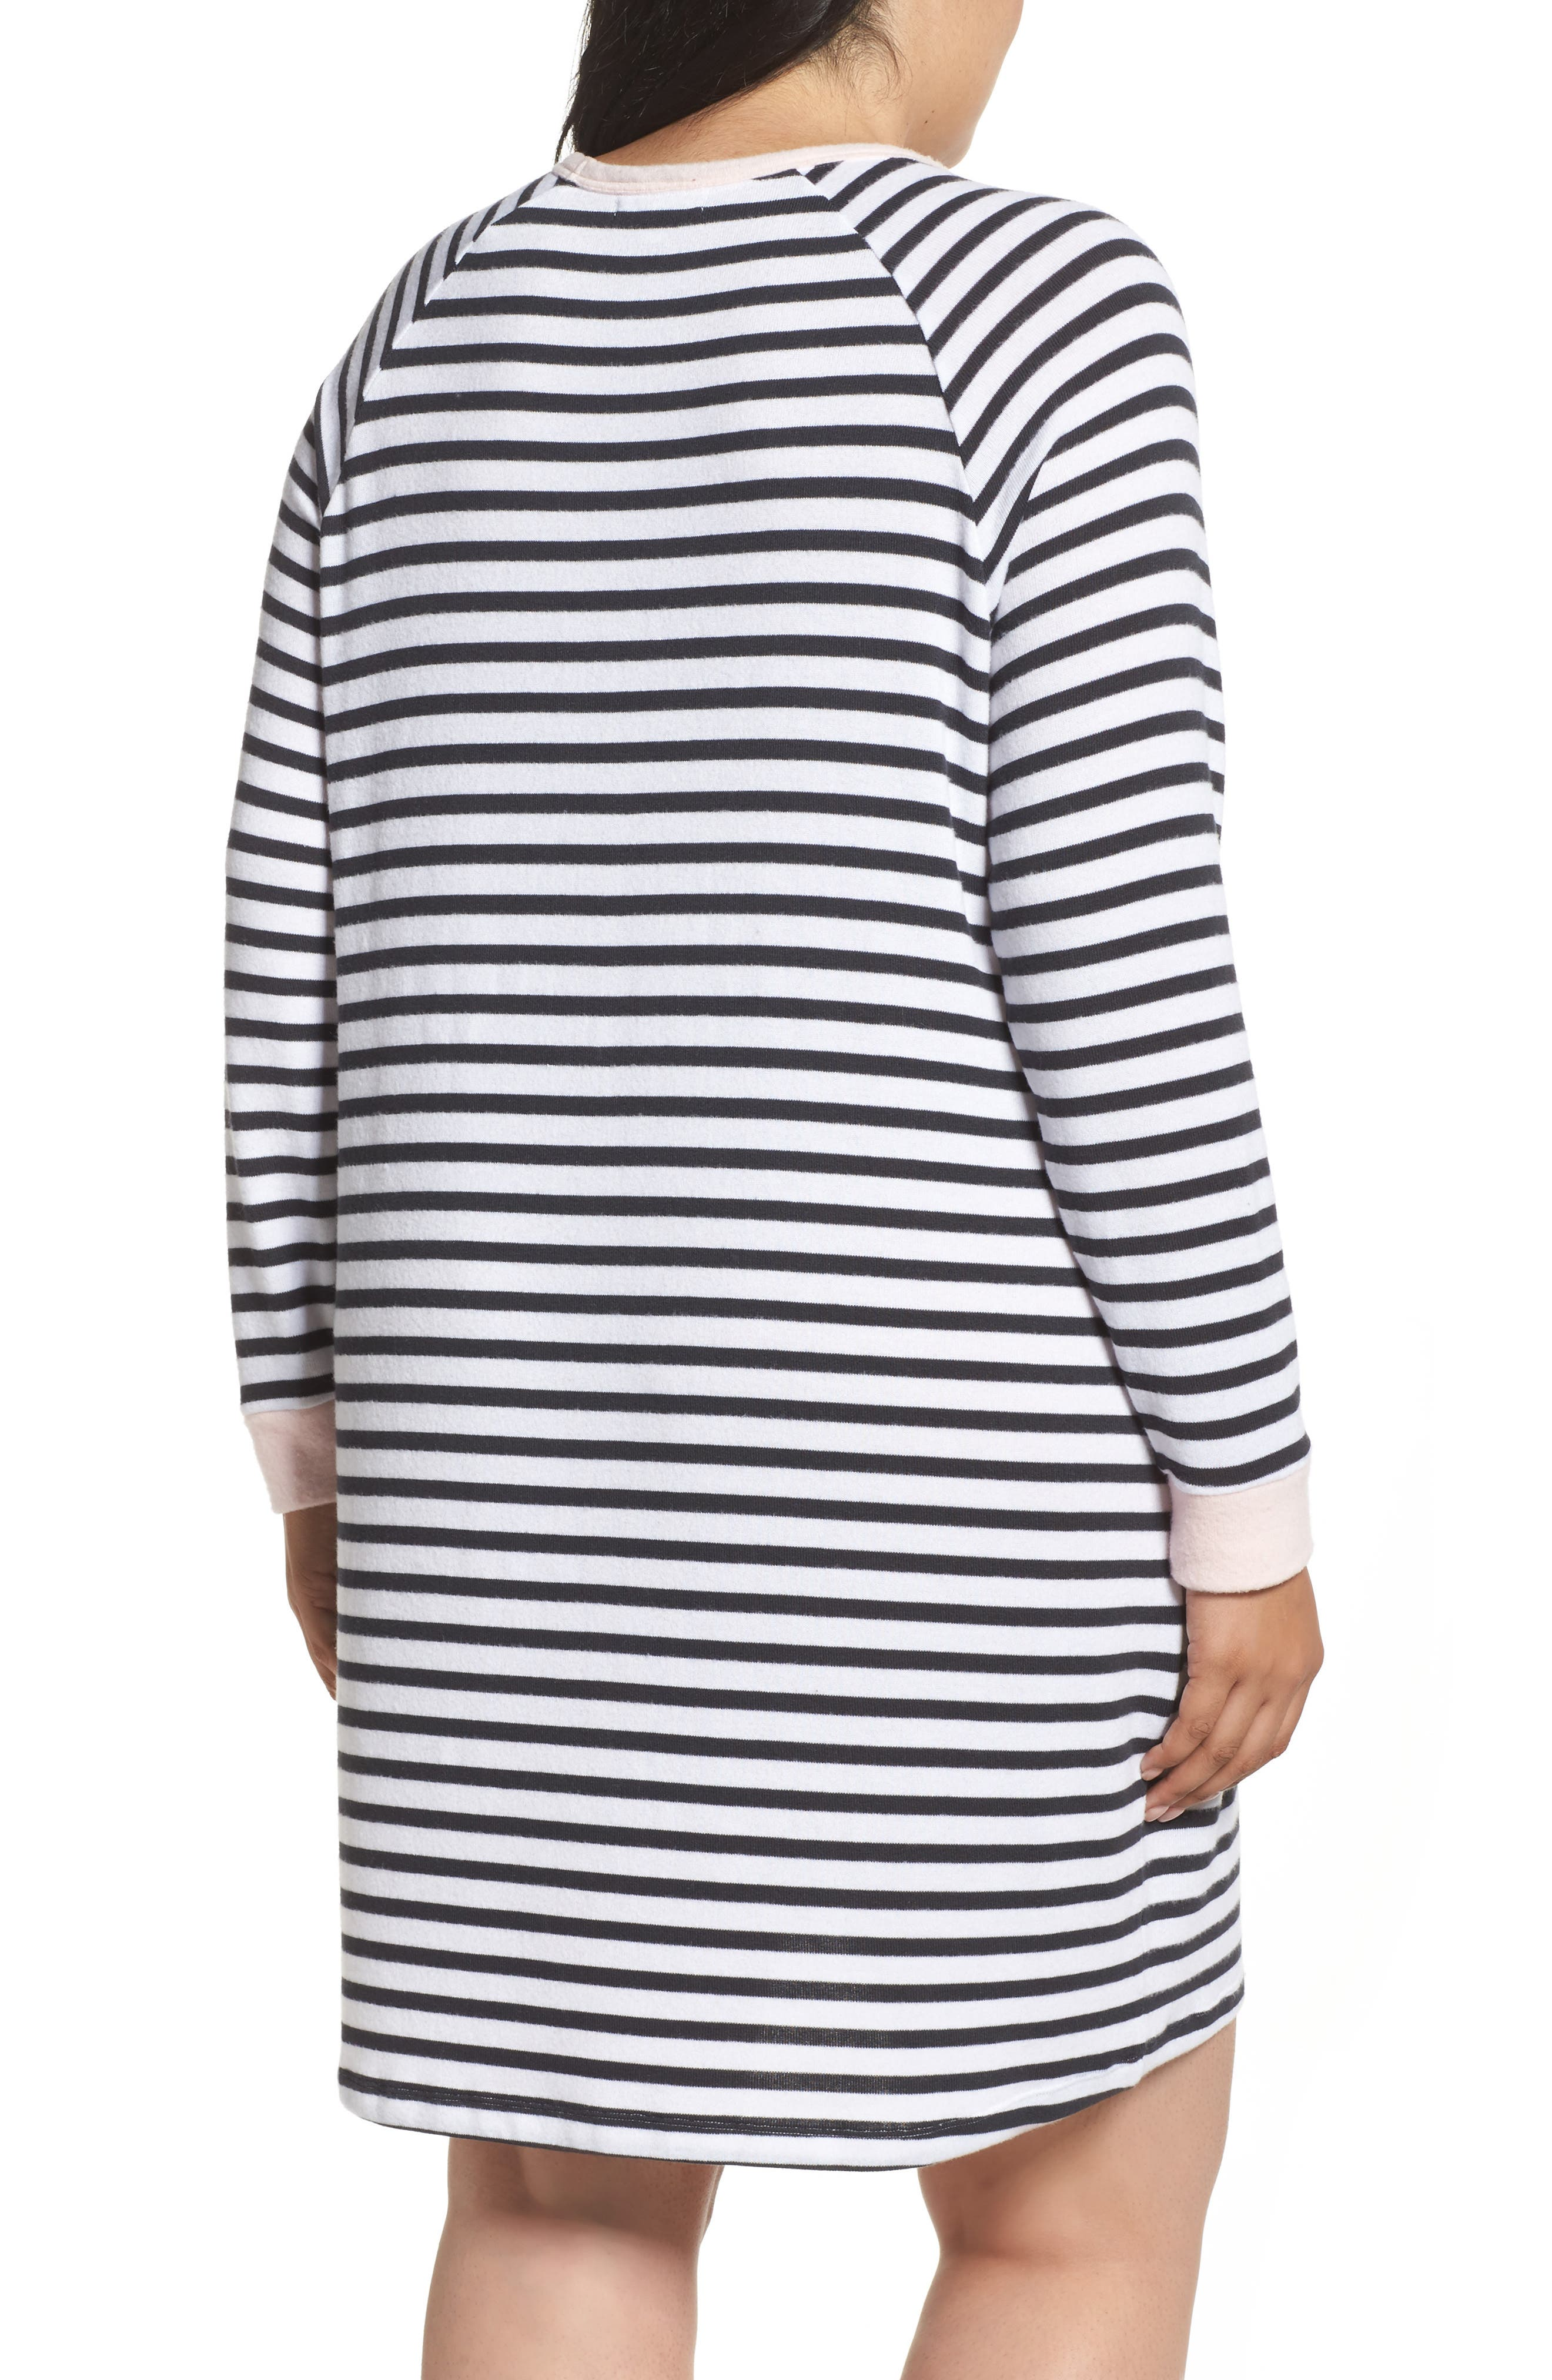 Stripe Peachy Jersey Nightshirt,                             Alternate thumbnail 2, color,                             900